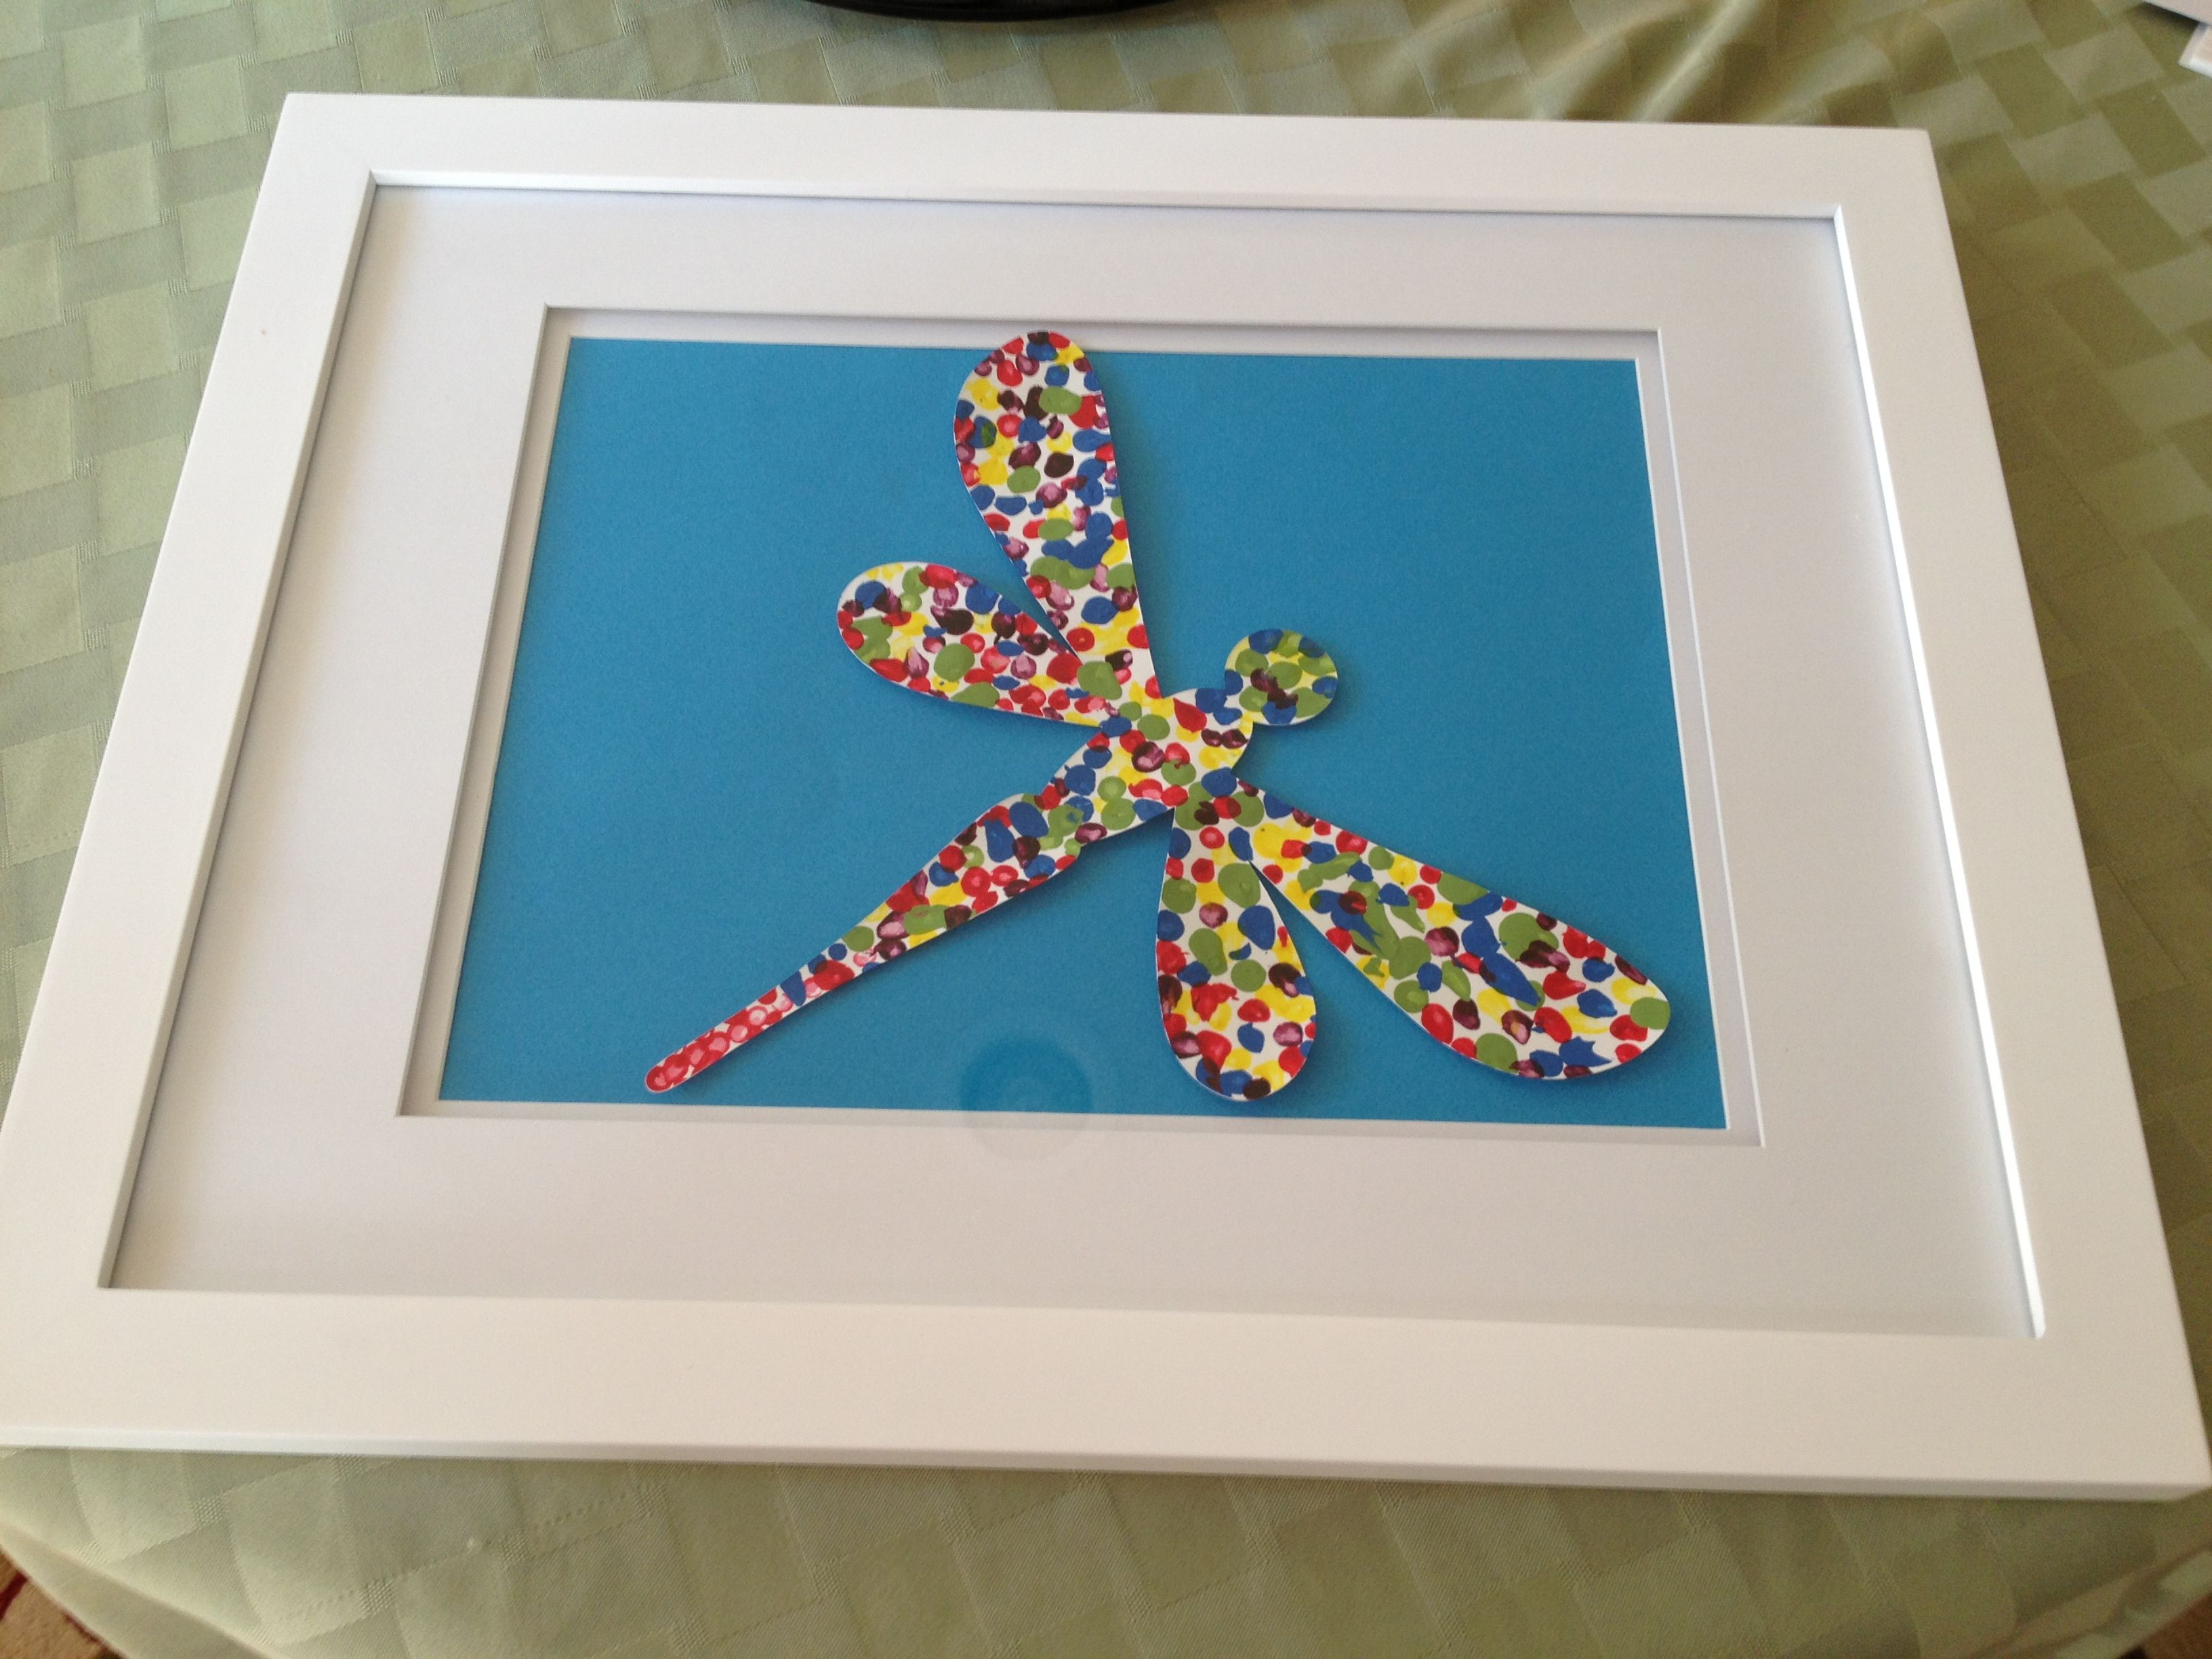 Dragonfly art. Easy kid art. great to do at home with kids, end